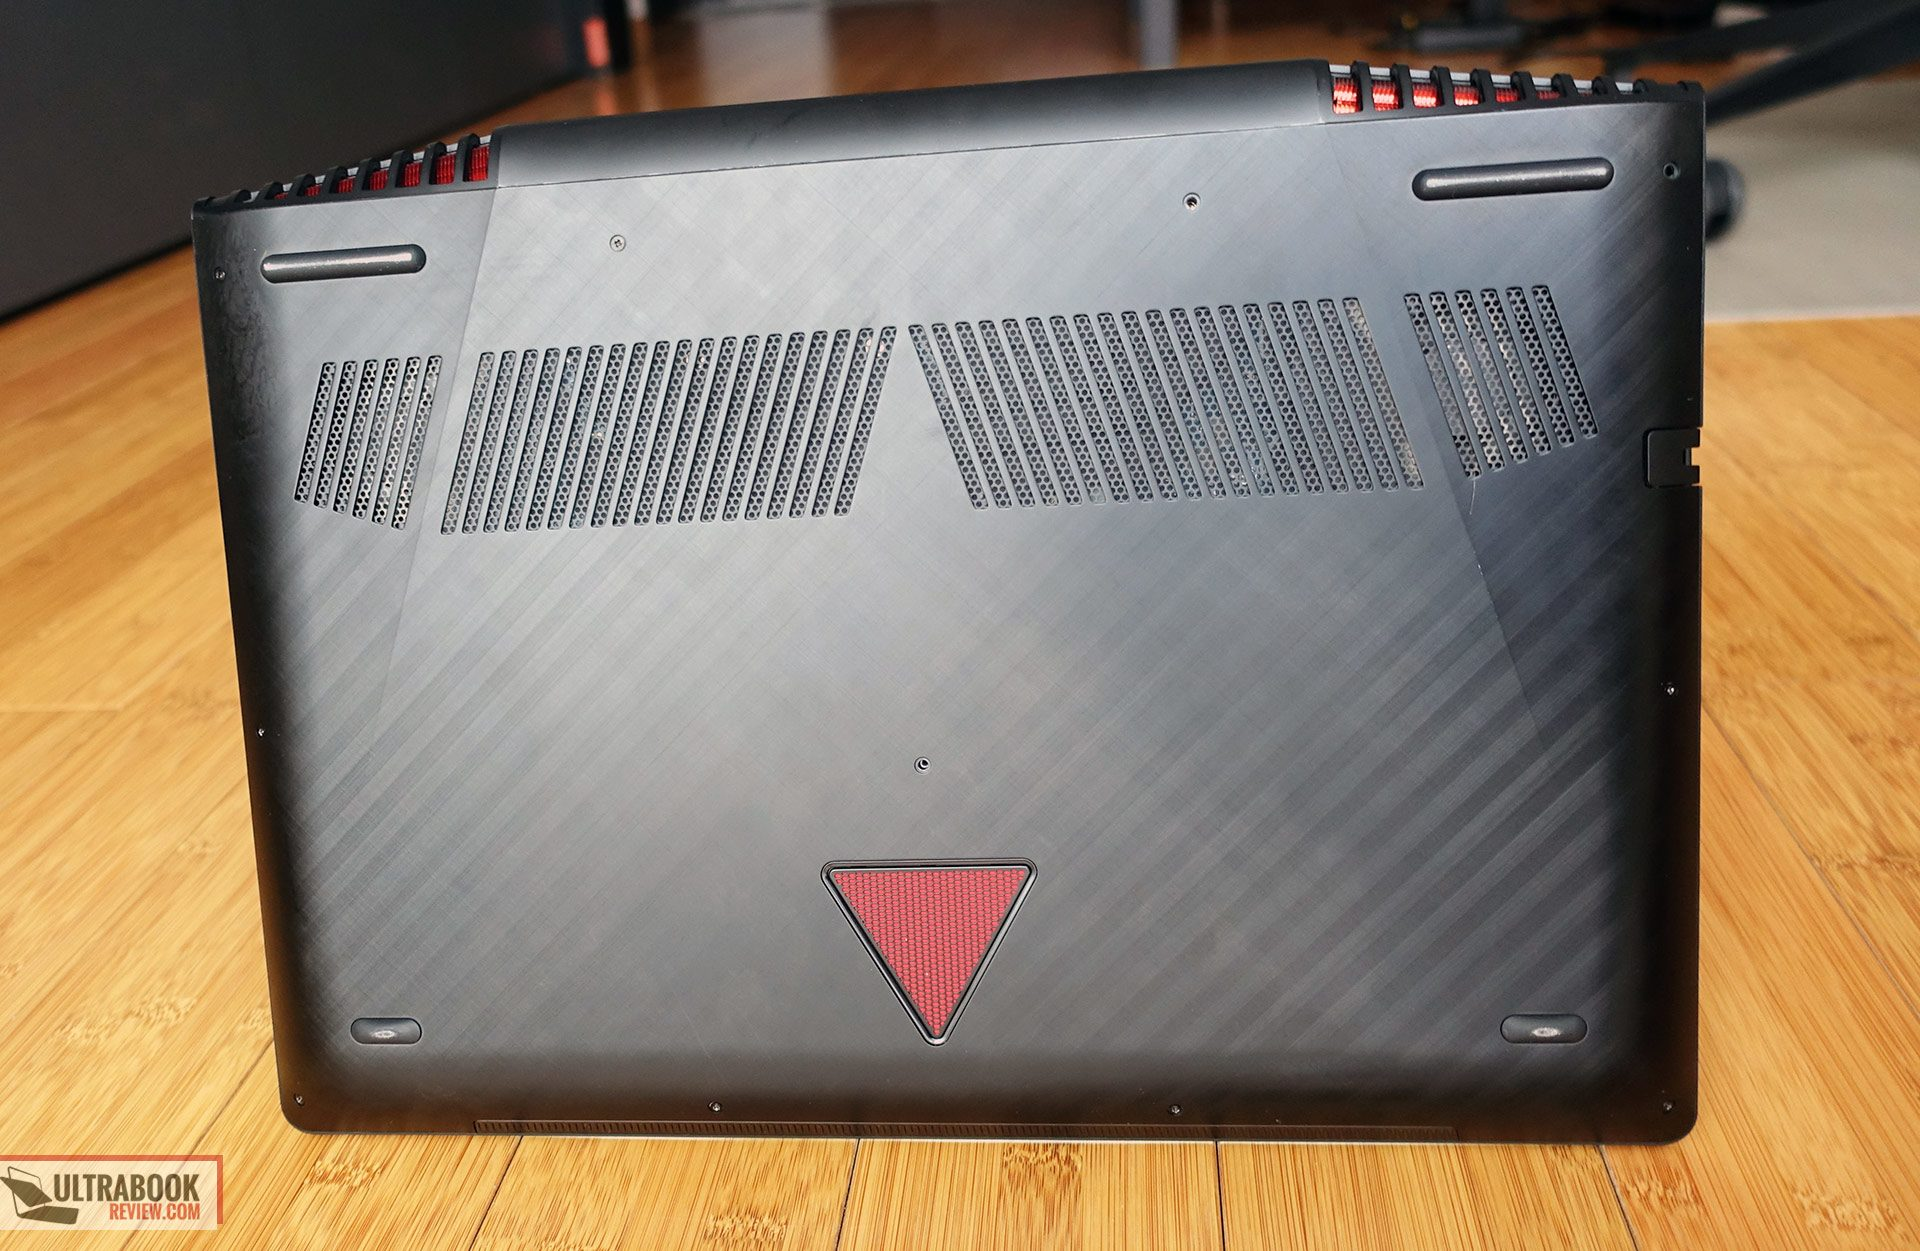 Lenovo Legion Y720 Review I7 7700hq Gtx 1060 Solid Mid Range Unique Laptop Cooling Pad Is 668 That Aside Though Theres Little Else I Can Say Wrong About The Design Lines And Choice Of Materials Metal Soft Plastic Used For Most Case